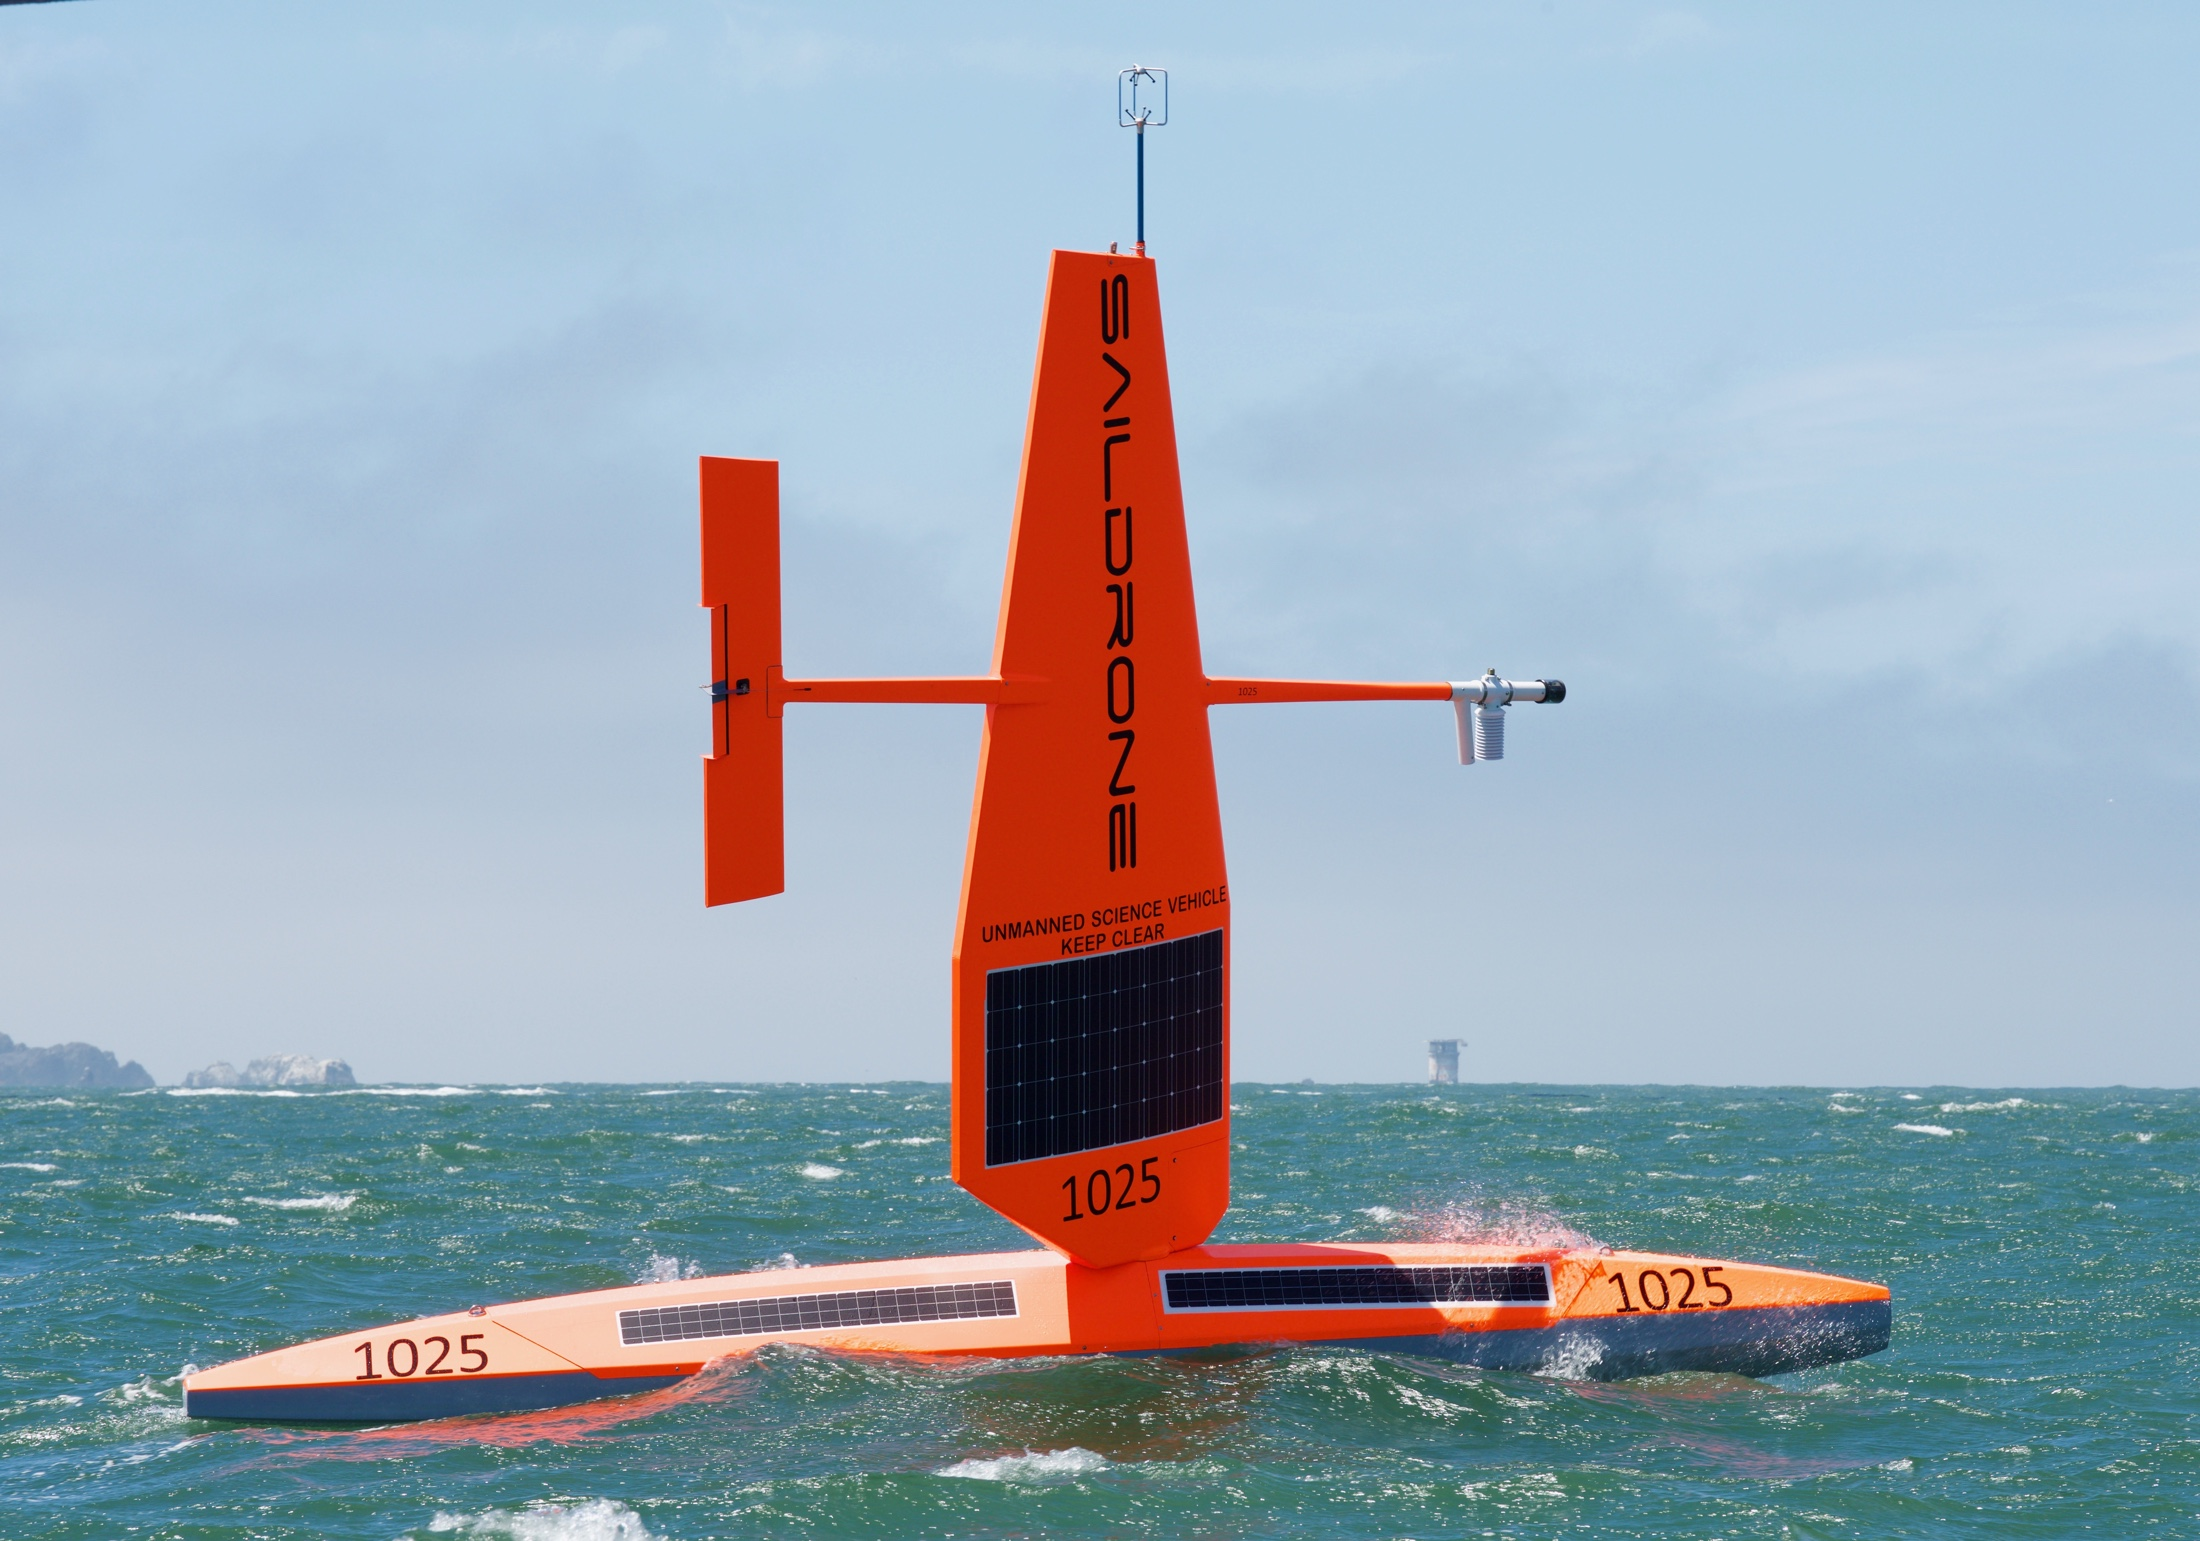 Saildrone on its way to a data collection mission in the Pacific